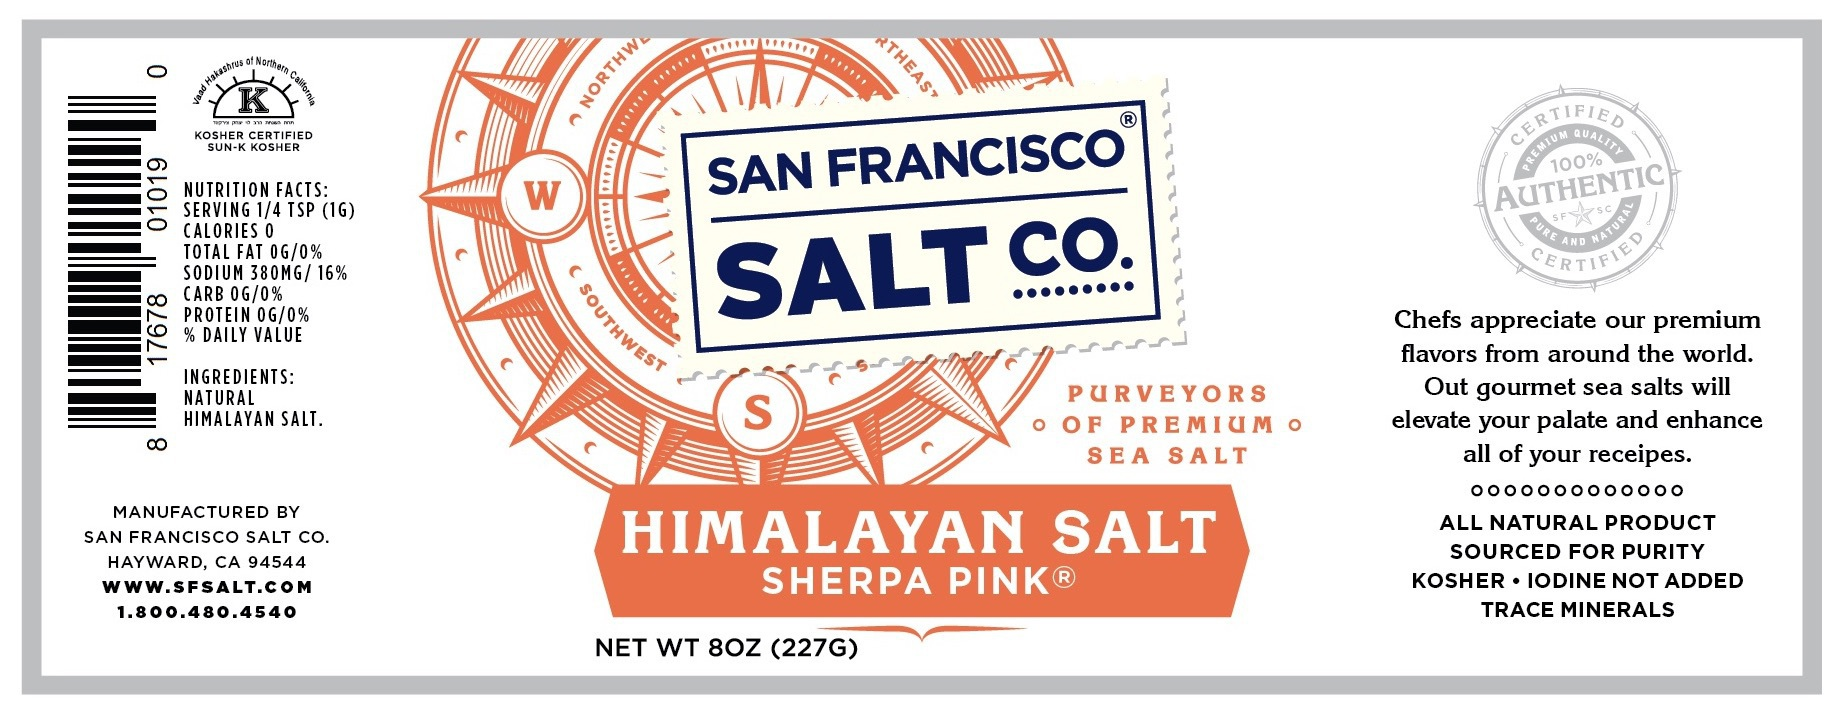 Sherpa Pink Himalayan Salt | The Natural Products Brands